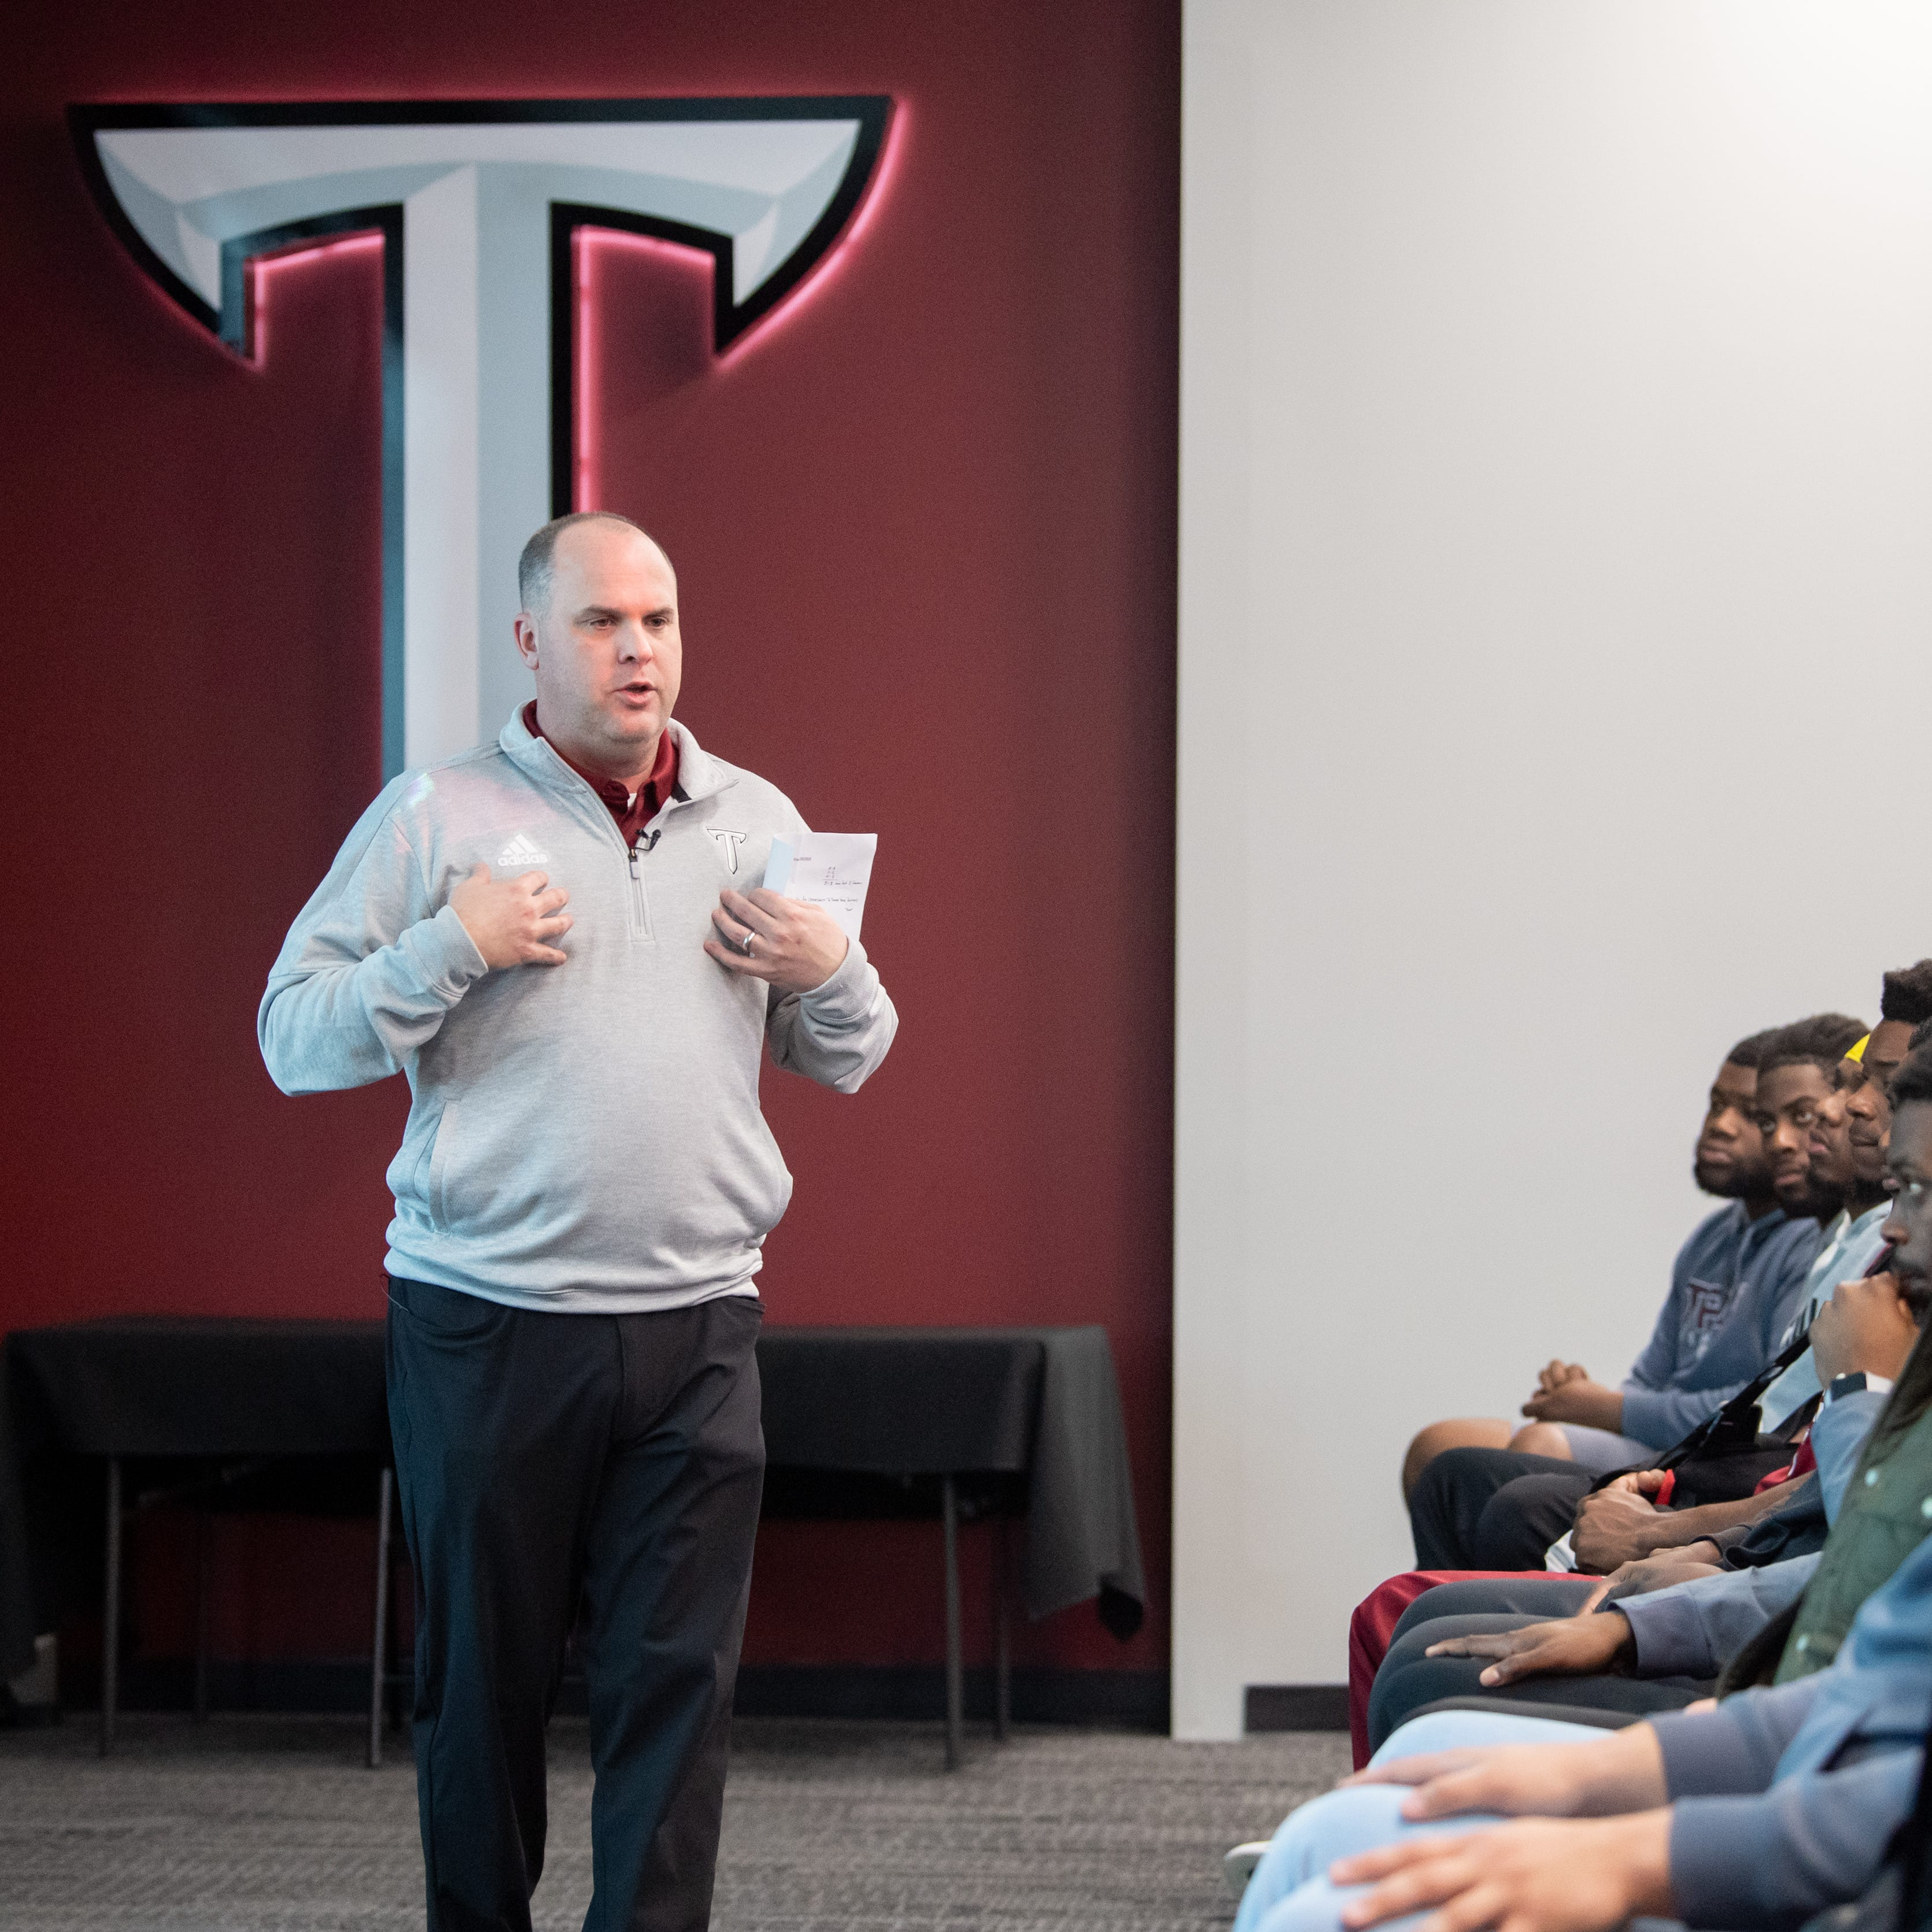 Chip Lindsey makes quick impression on Troy Trojans